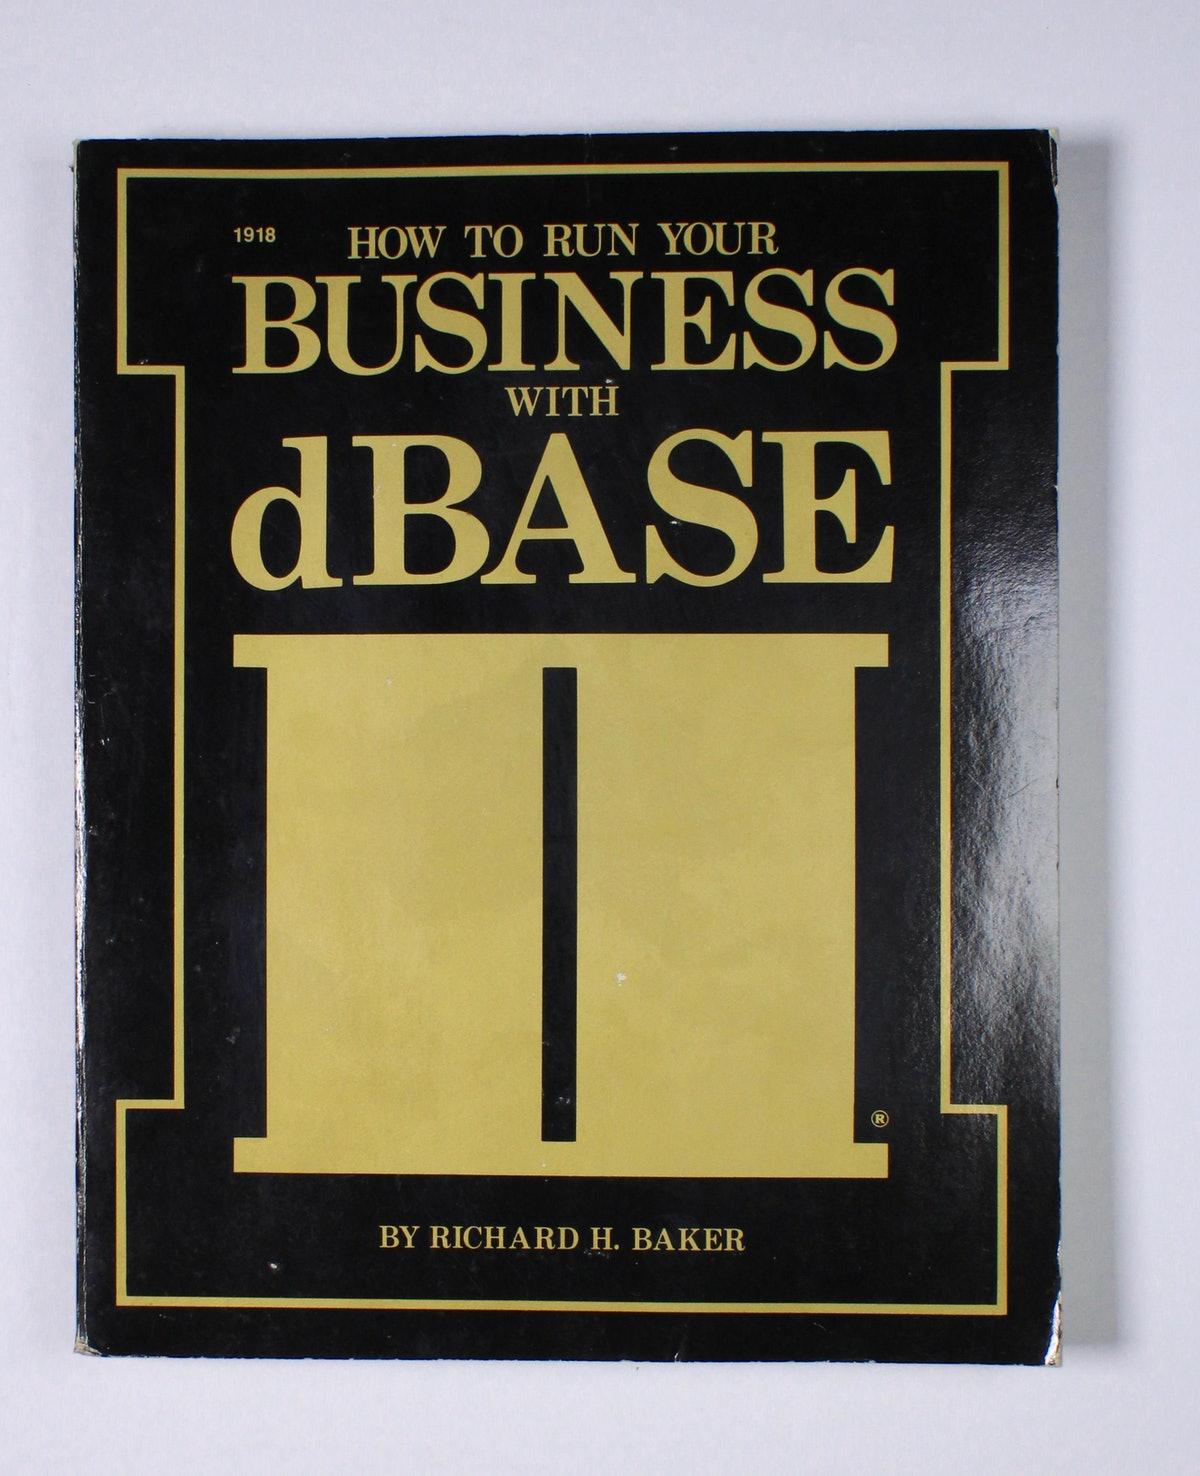 How to Run Your Business with dBase